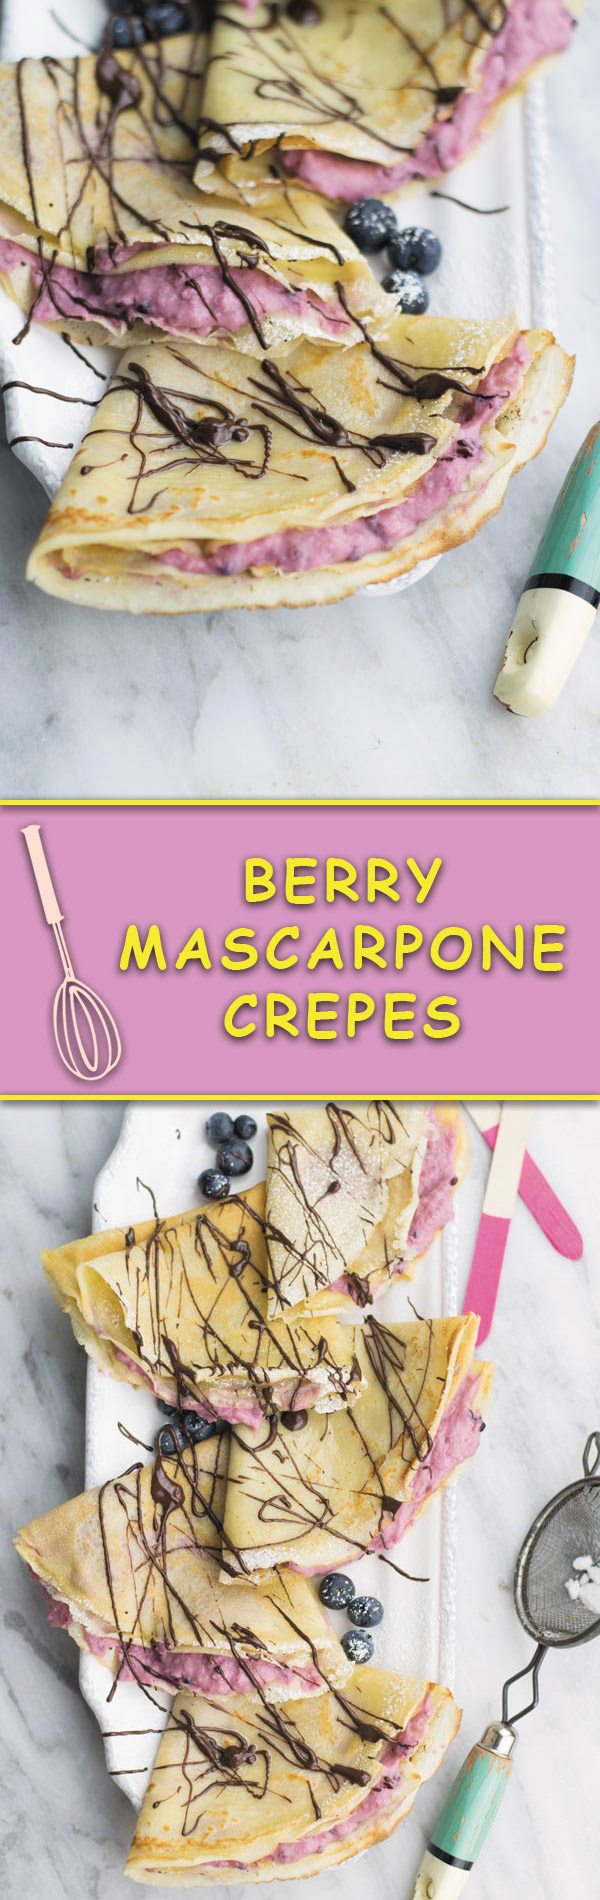 Berry Mascarpone Crepes - delicious from scratch crepes filled with this insanely addicting mixed berries & mascarpone cheese filling.